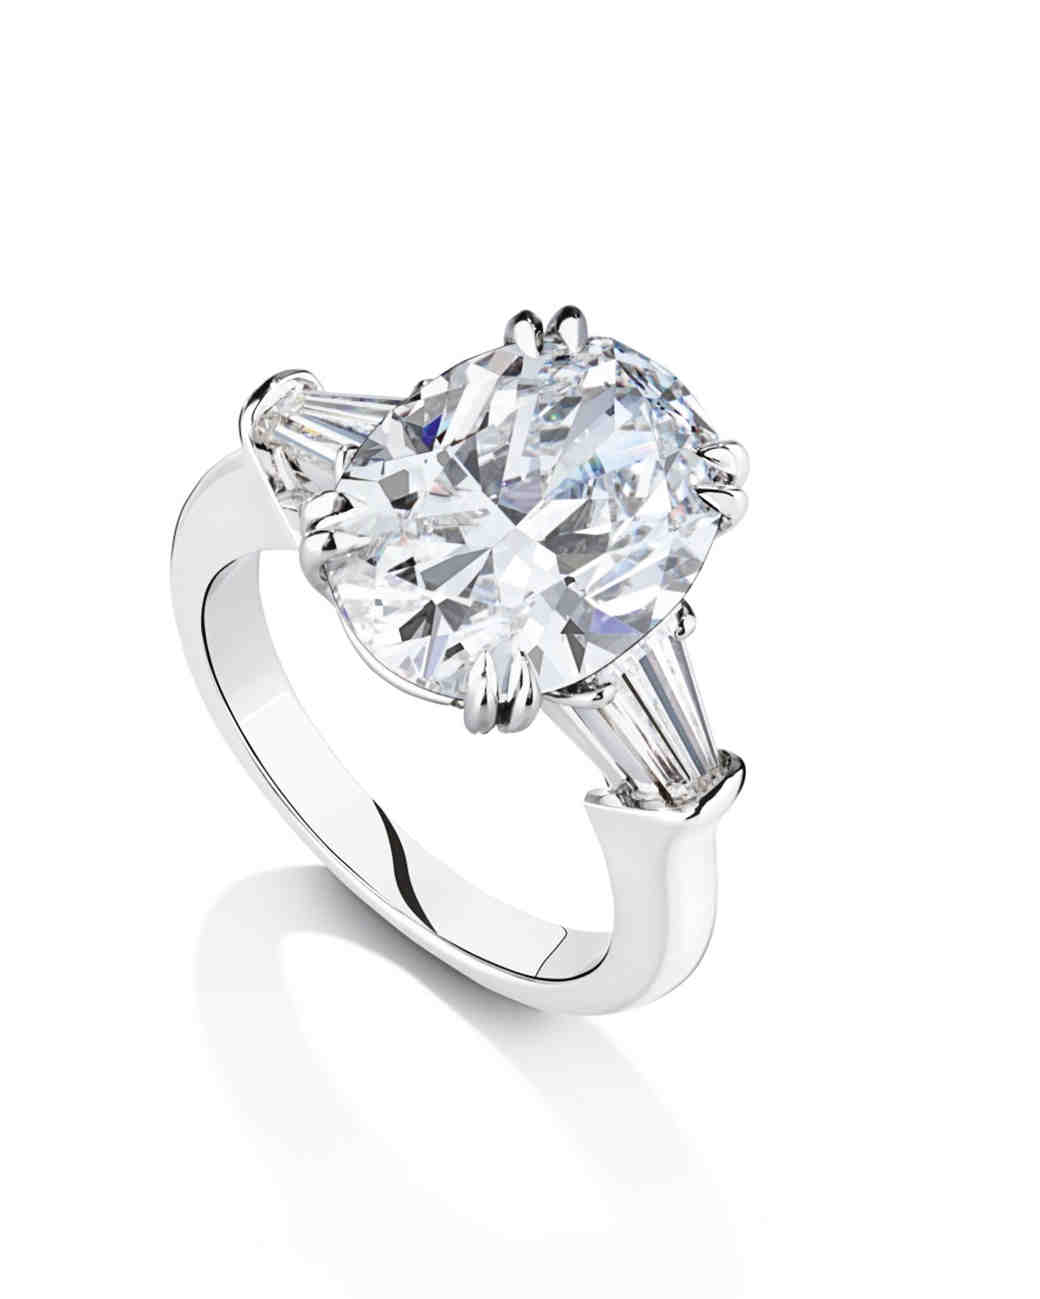 Harry Winston Oval Engagement Ring